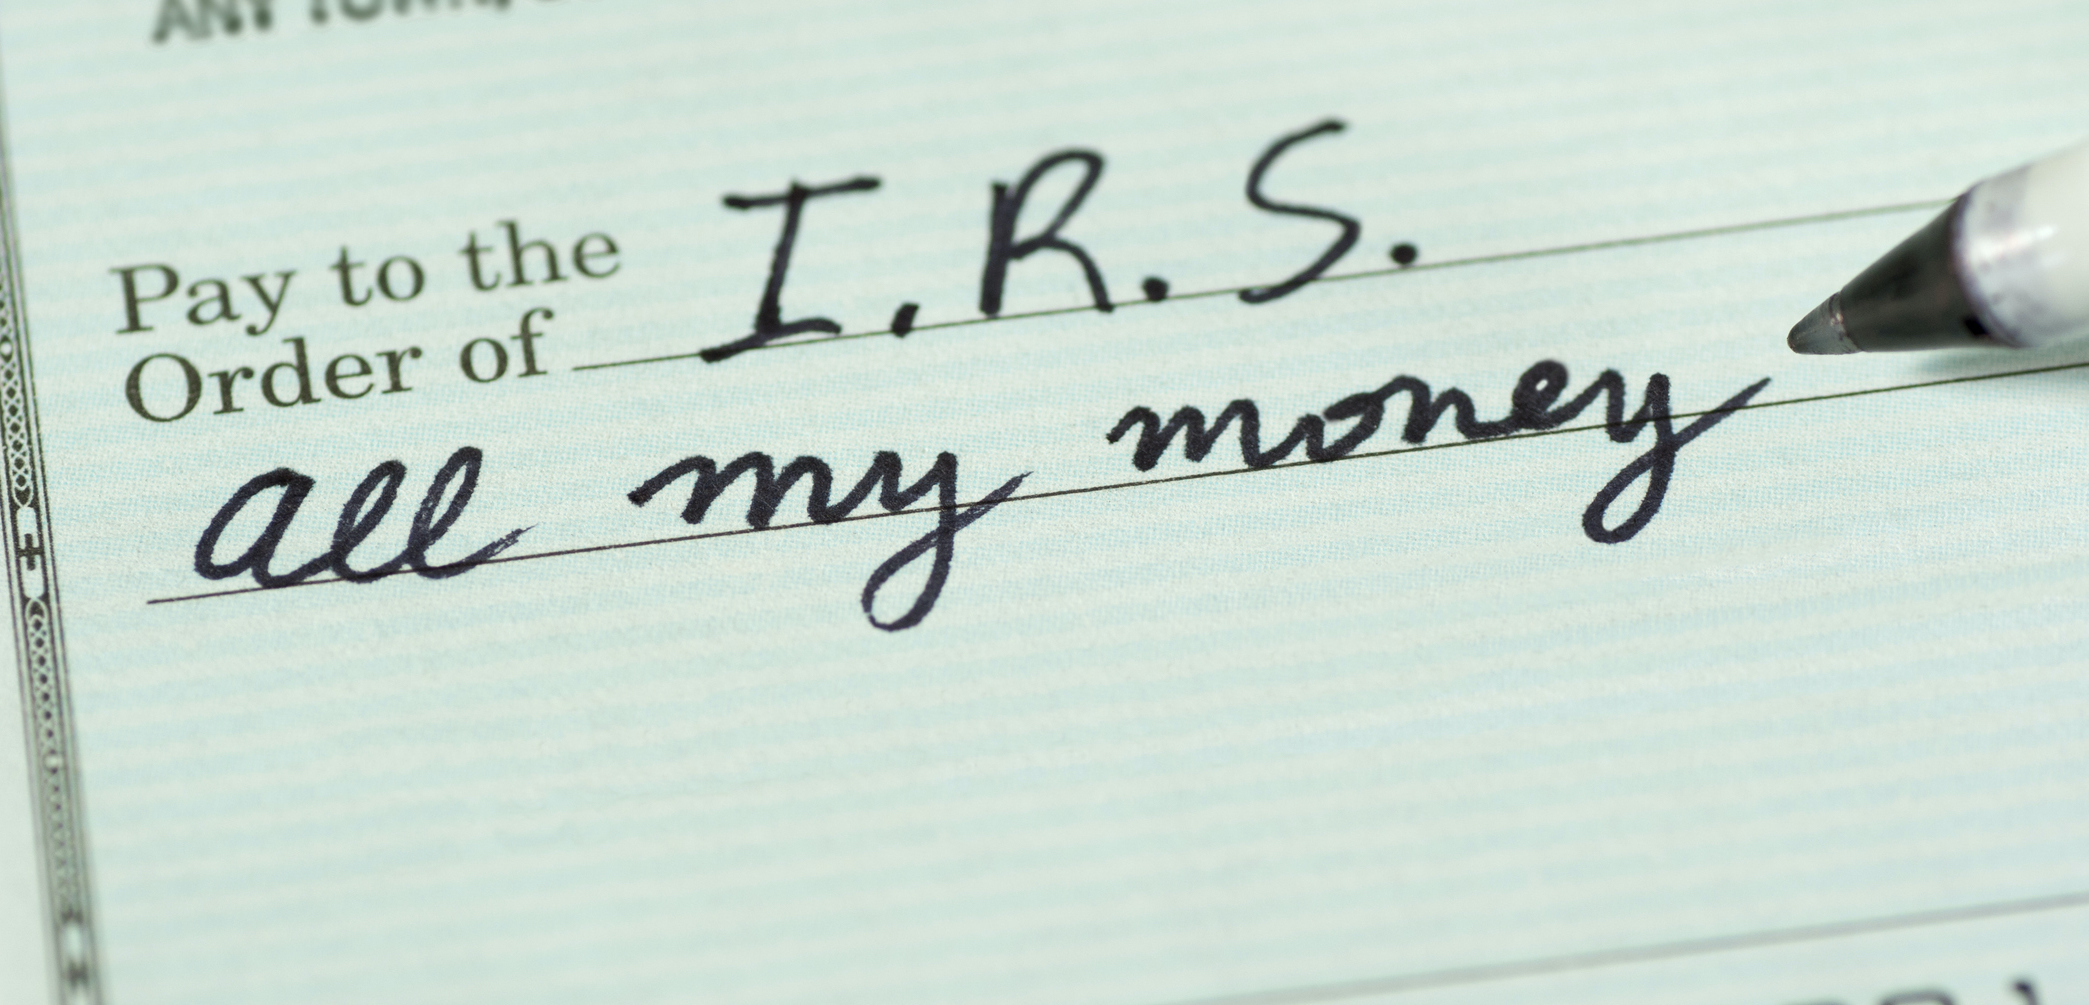 Options for Non-compliant US Citizens Facing Increased Scrutiny from the IRS